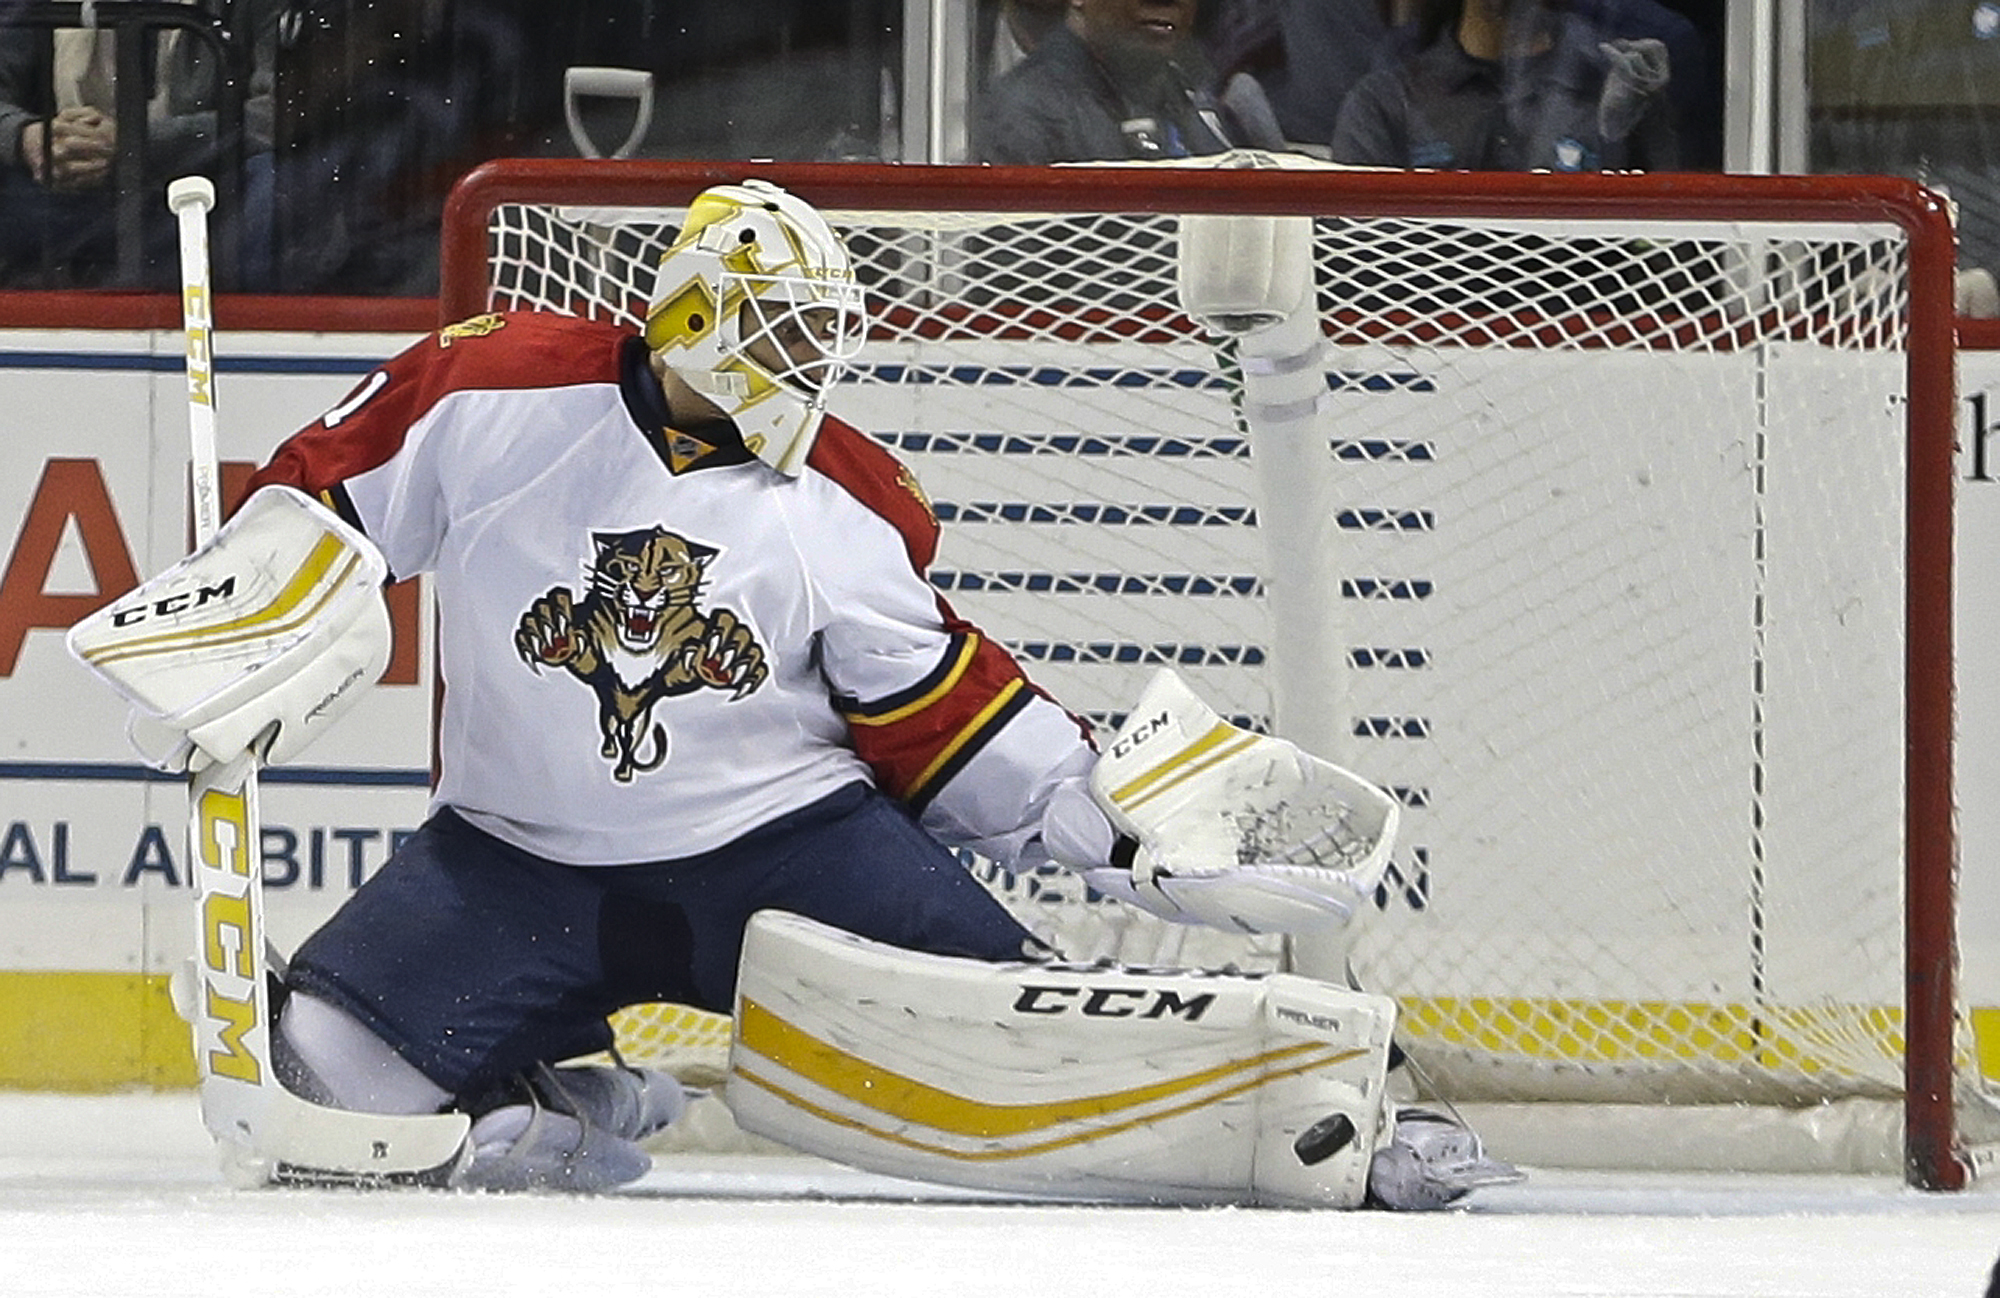 Florida Panthers goalie Roberto Luongo stops a shot during the first period of an NHL hockey game against the New York Islanders on Tuesday, Dec. 15, 2015, in New York. (AP Photo/Frank Franklin II)